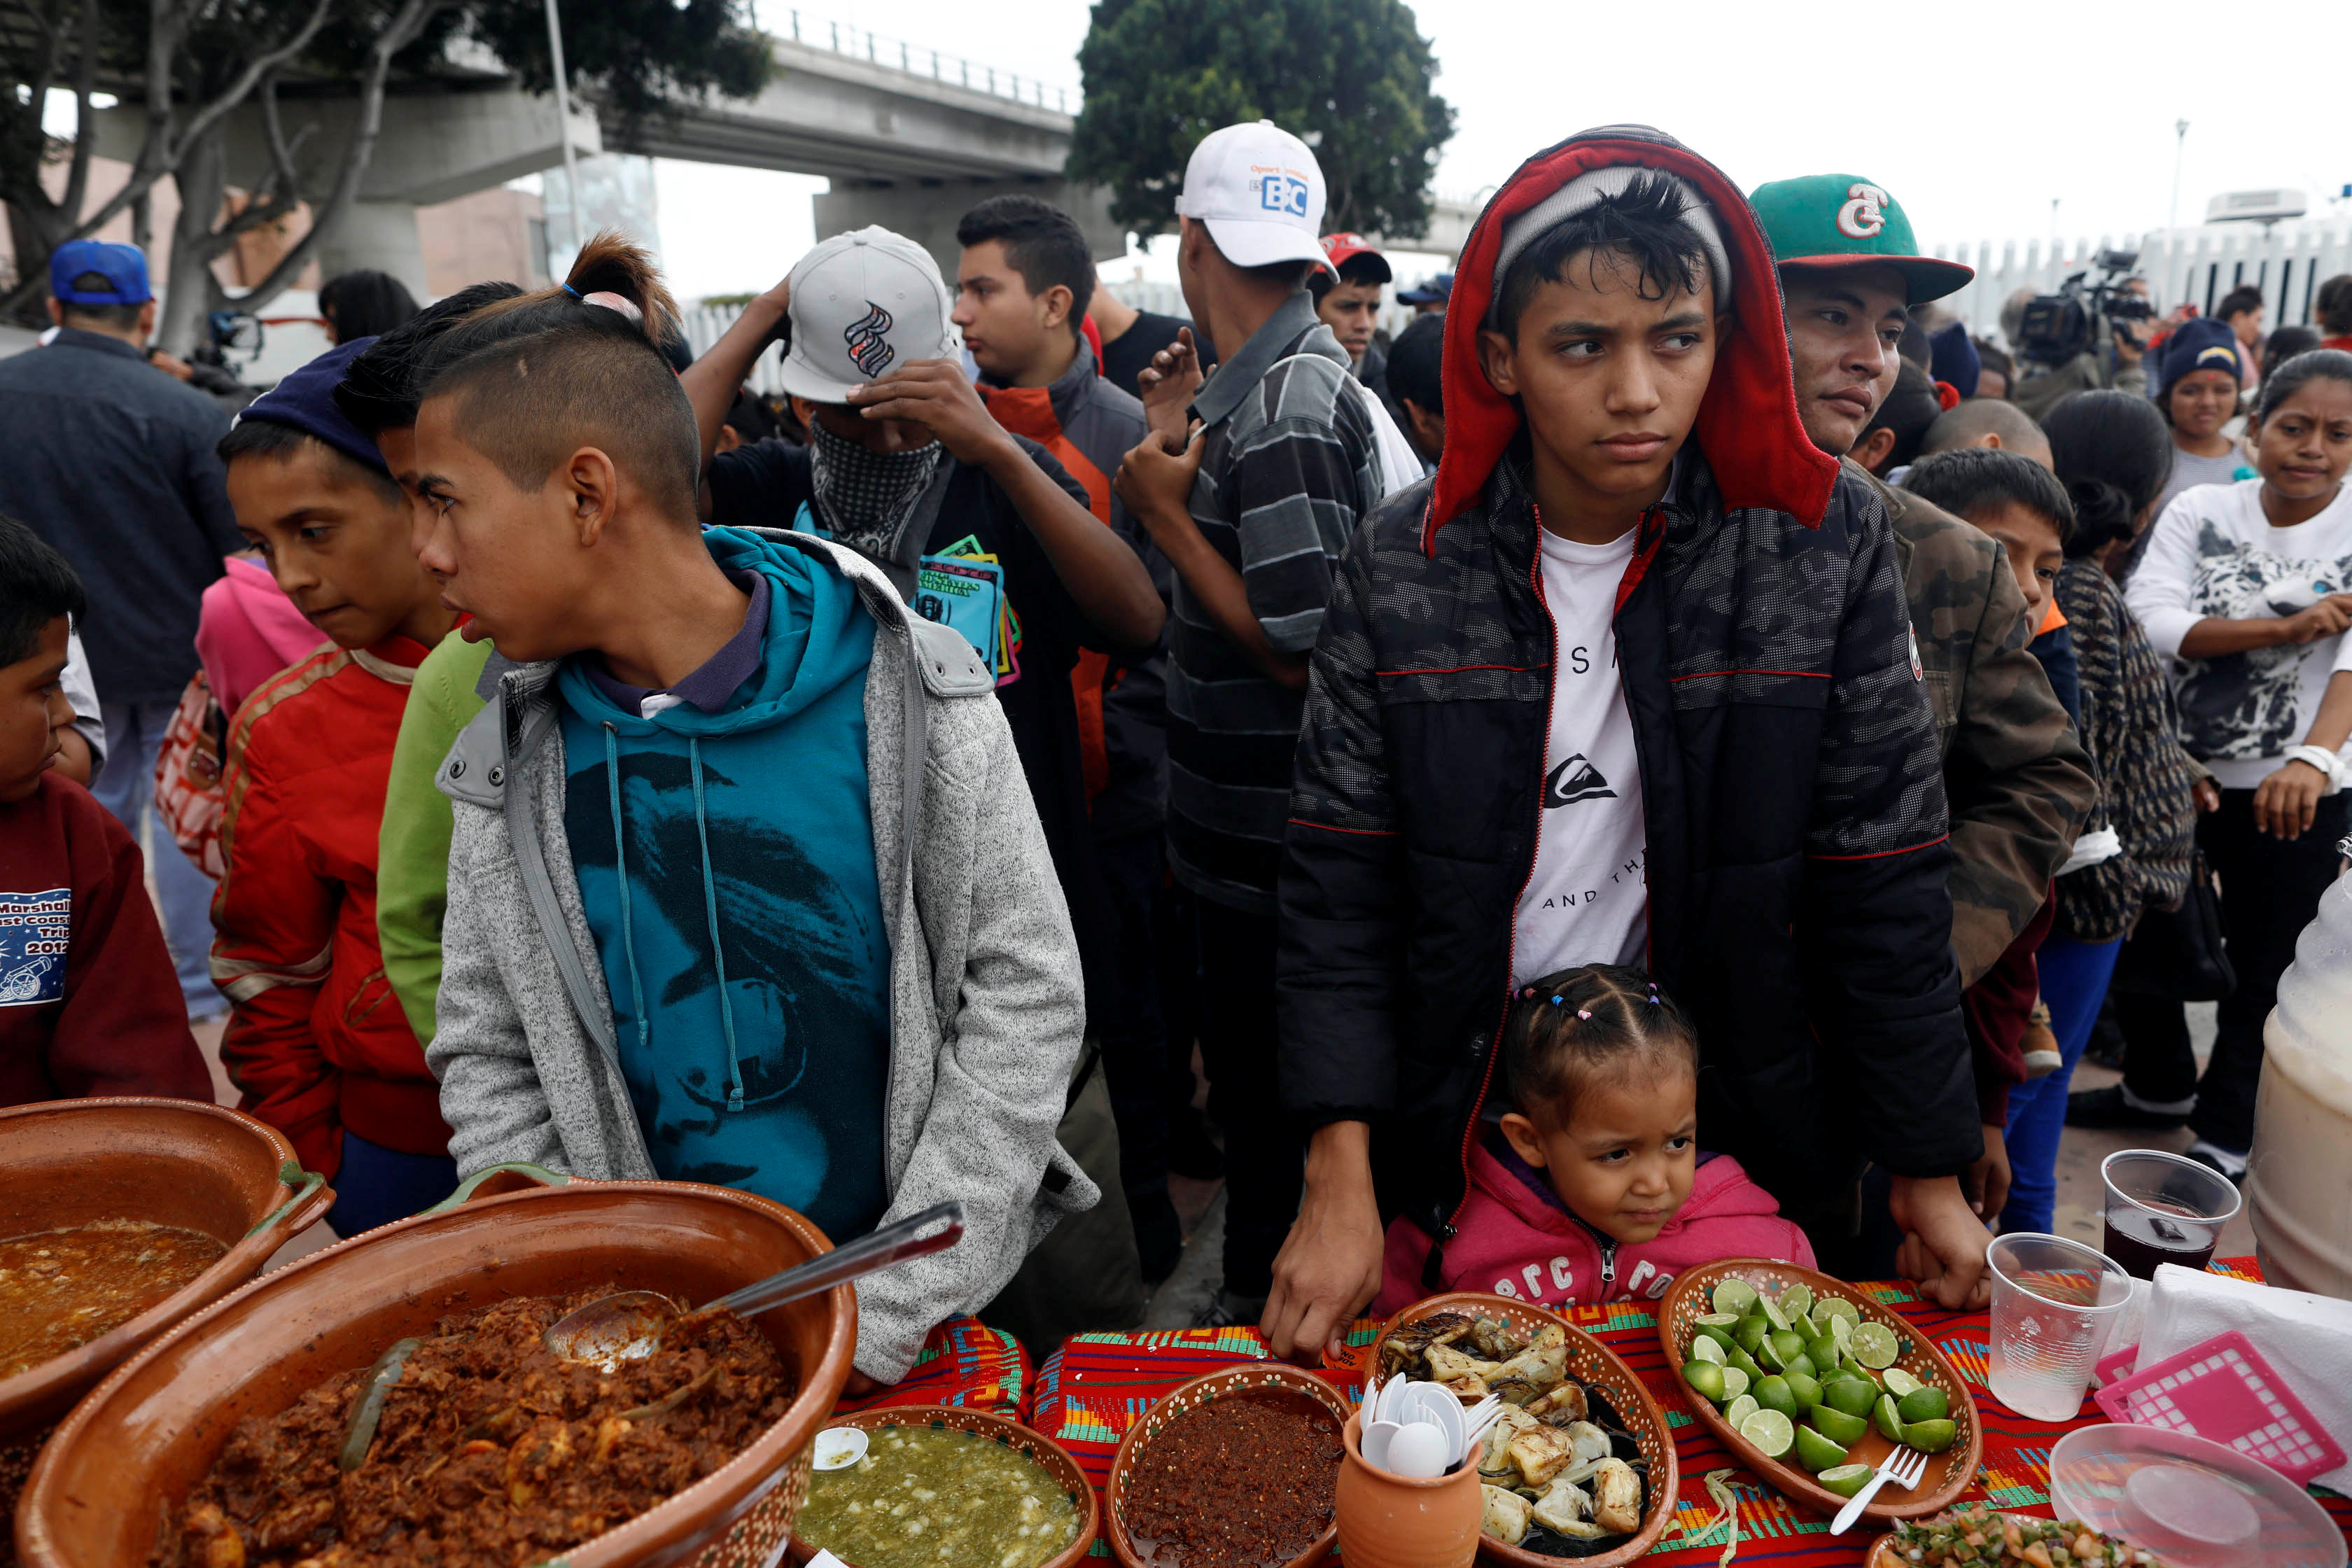 Members of a caravan of migrants from Central America line up to receive food near the San Ysidro checkpoint as the first fellow migrants entered U.S. territory to seek asylum on Monday, in Tijuana, Mexico April 30, 2018. REUTERS/Edgard Garrido